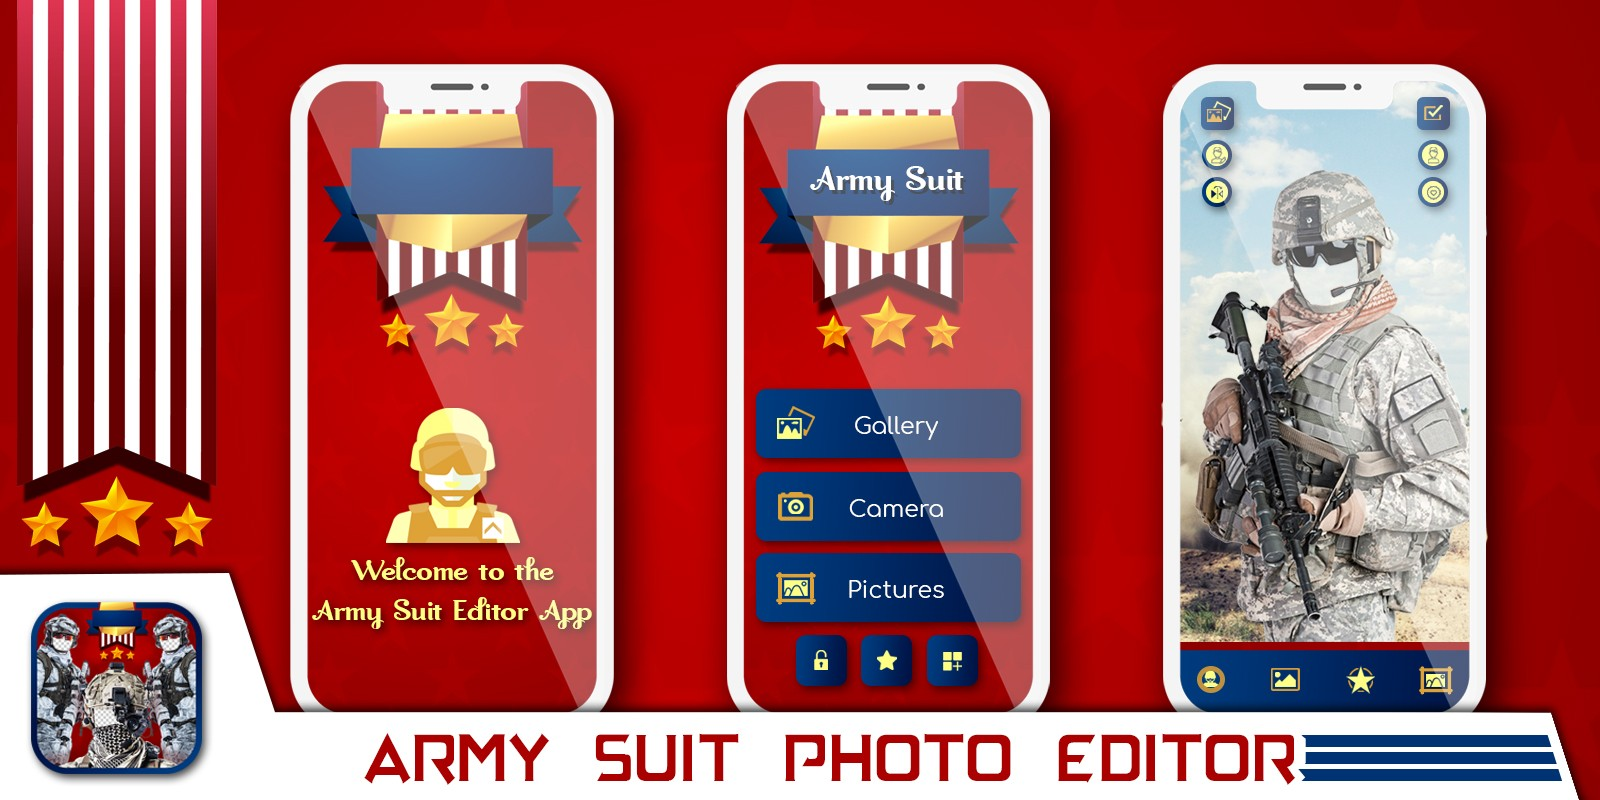 Army Suit Photo Editor - Android Source Code